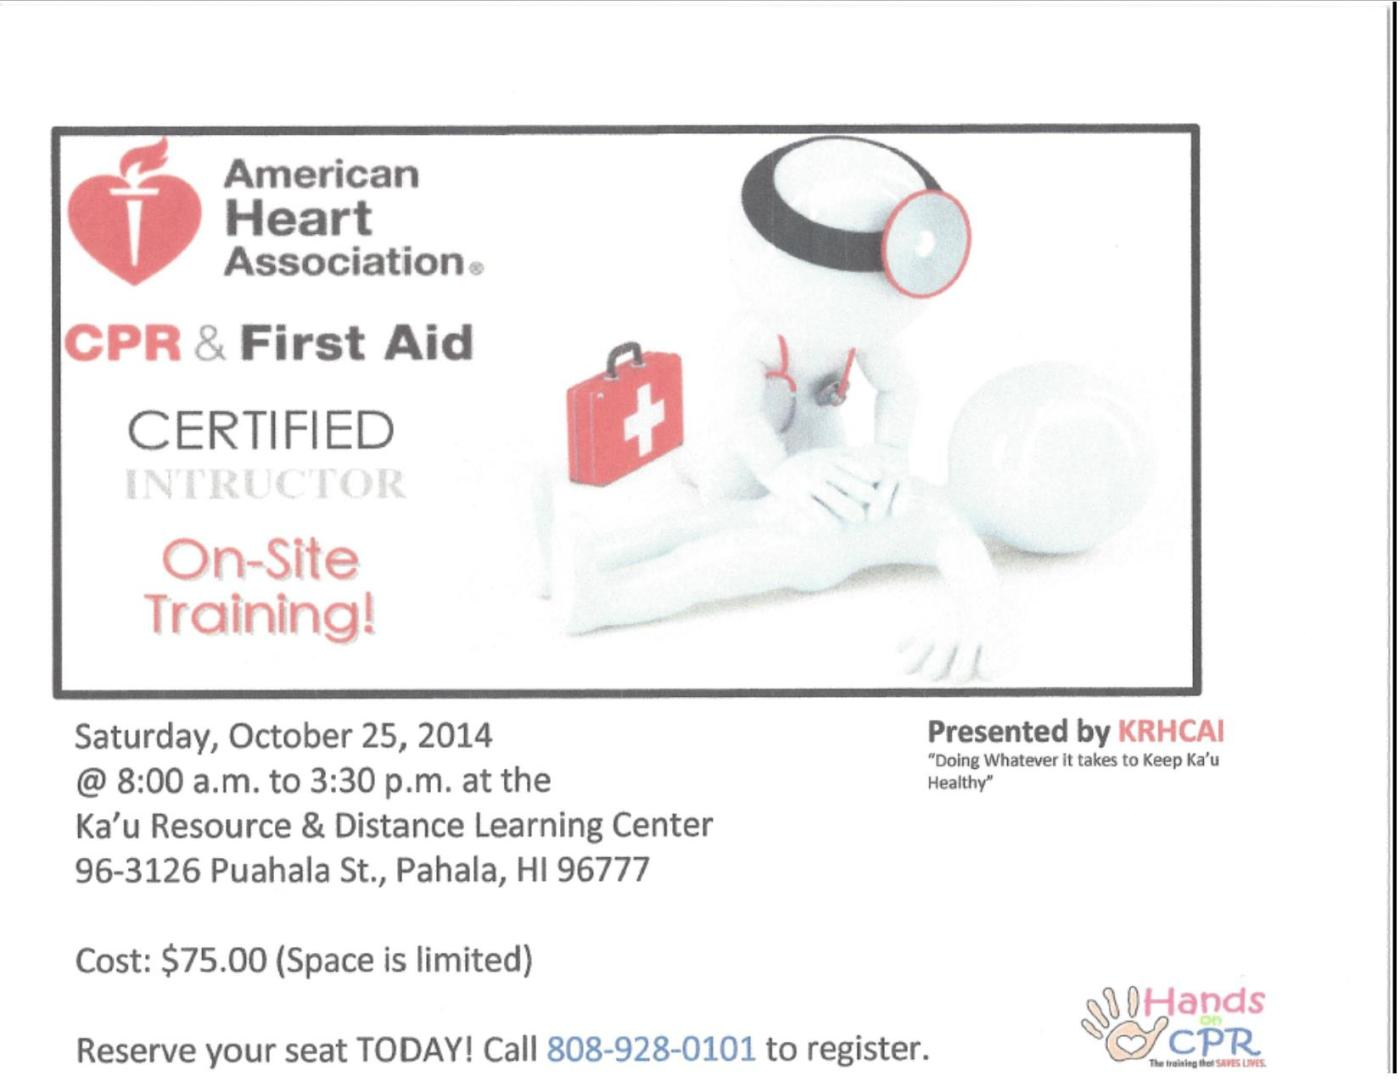 Krhcais cpr and first aid certification class to be held 1025 krhcais cpr and first aid certification class to be held 1025 kau rural health community association inc xflitez Gallery